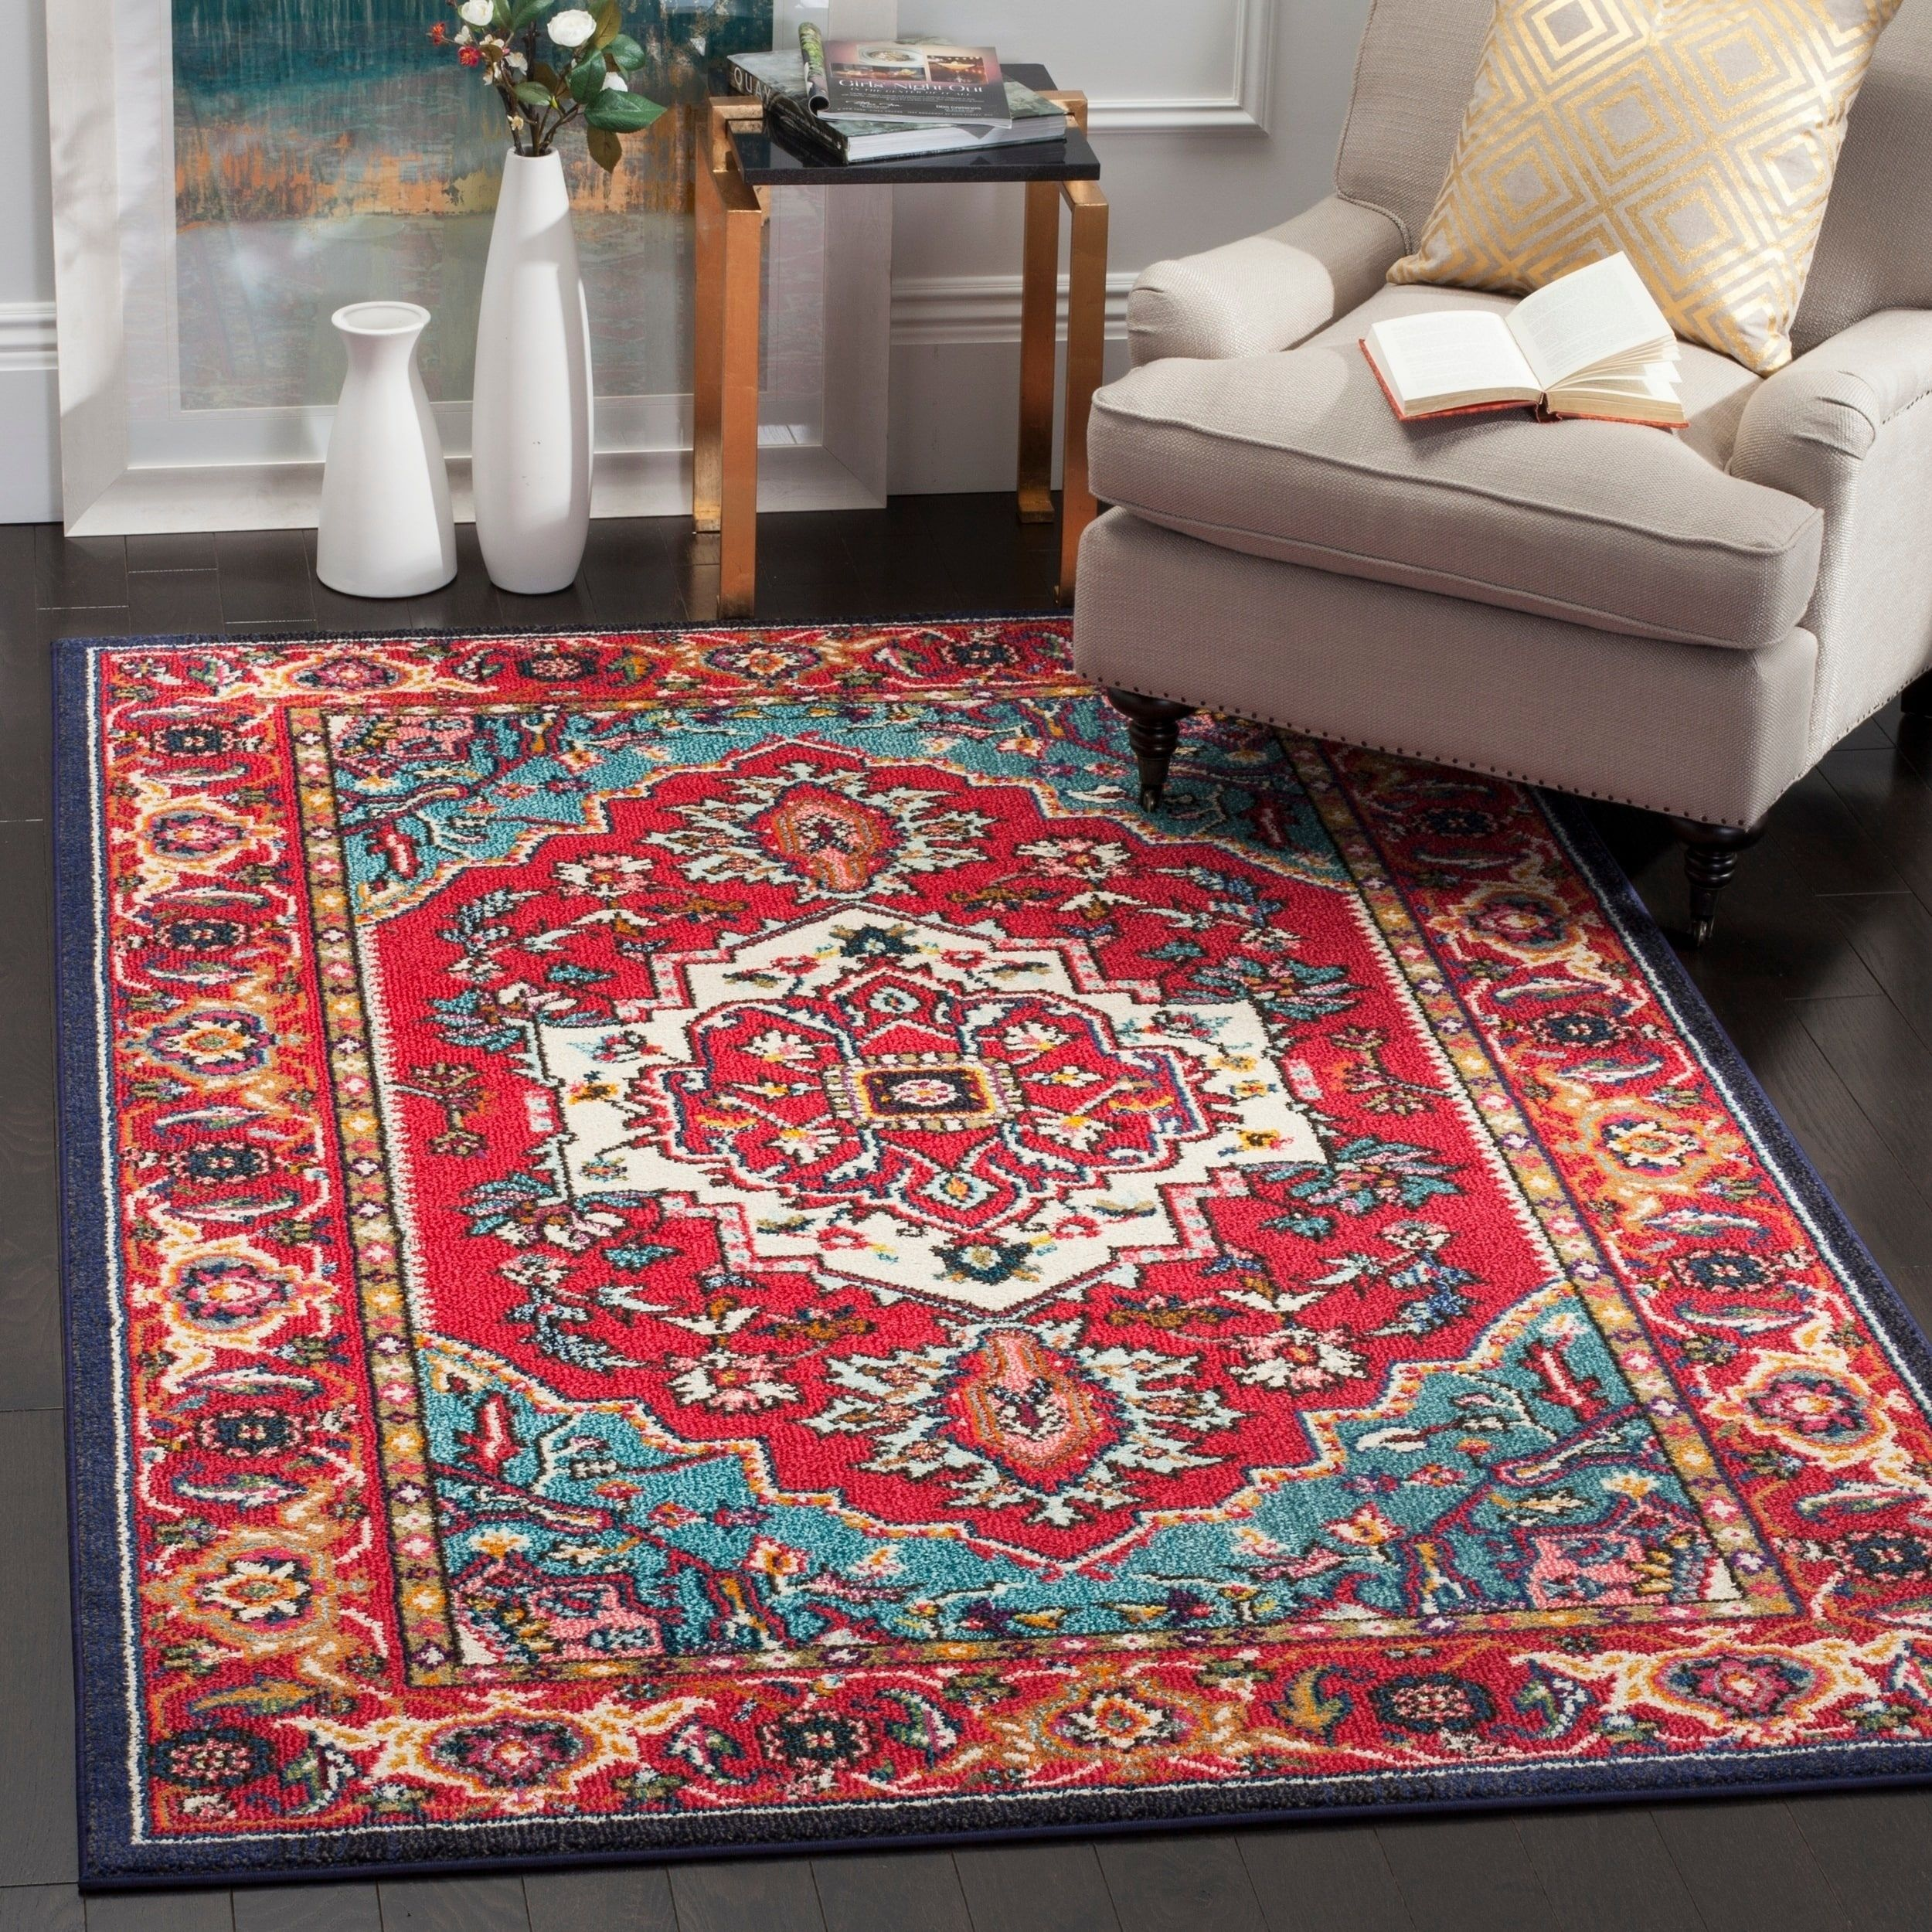 Safavieh Monaco Urve Boho Medallion Rug Turquoise Rug Area Rugs Traditional Area Rugs